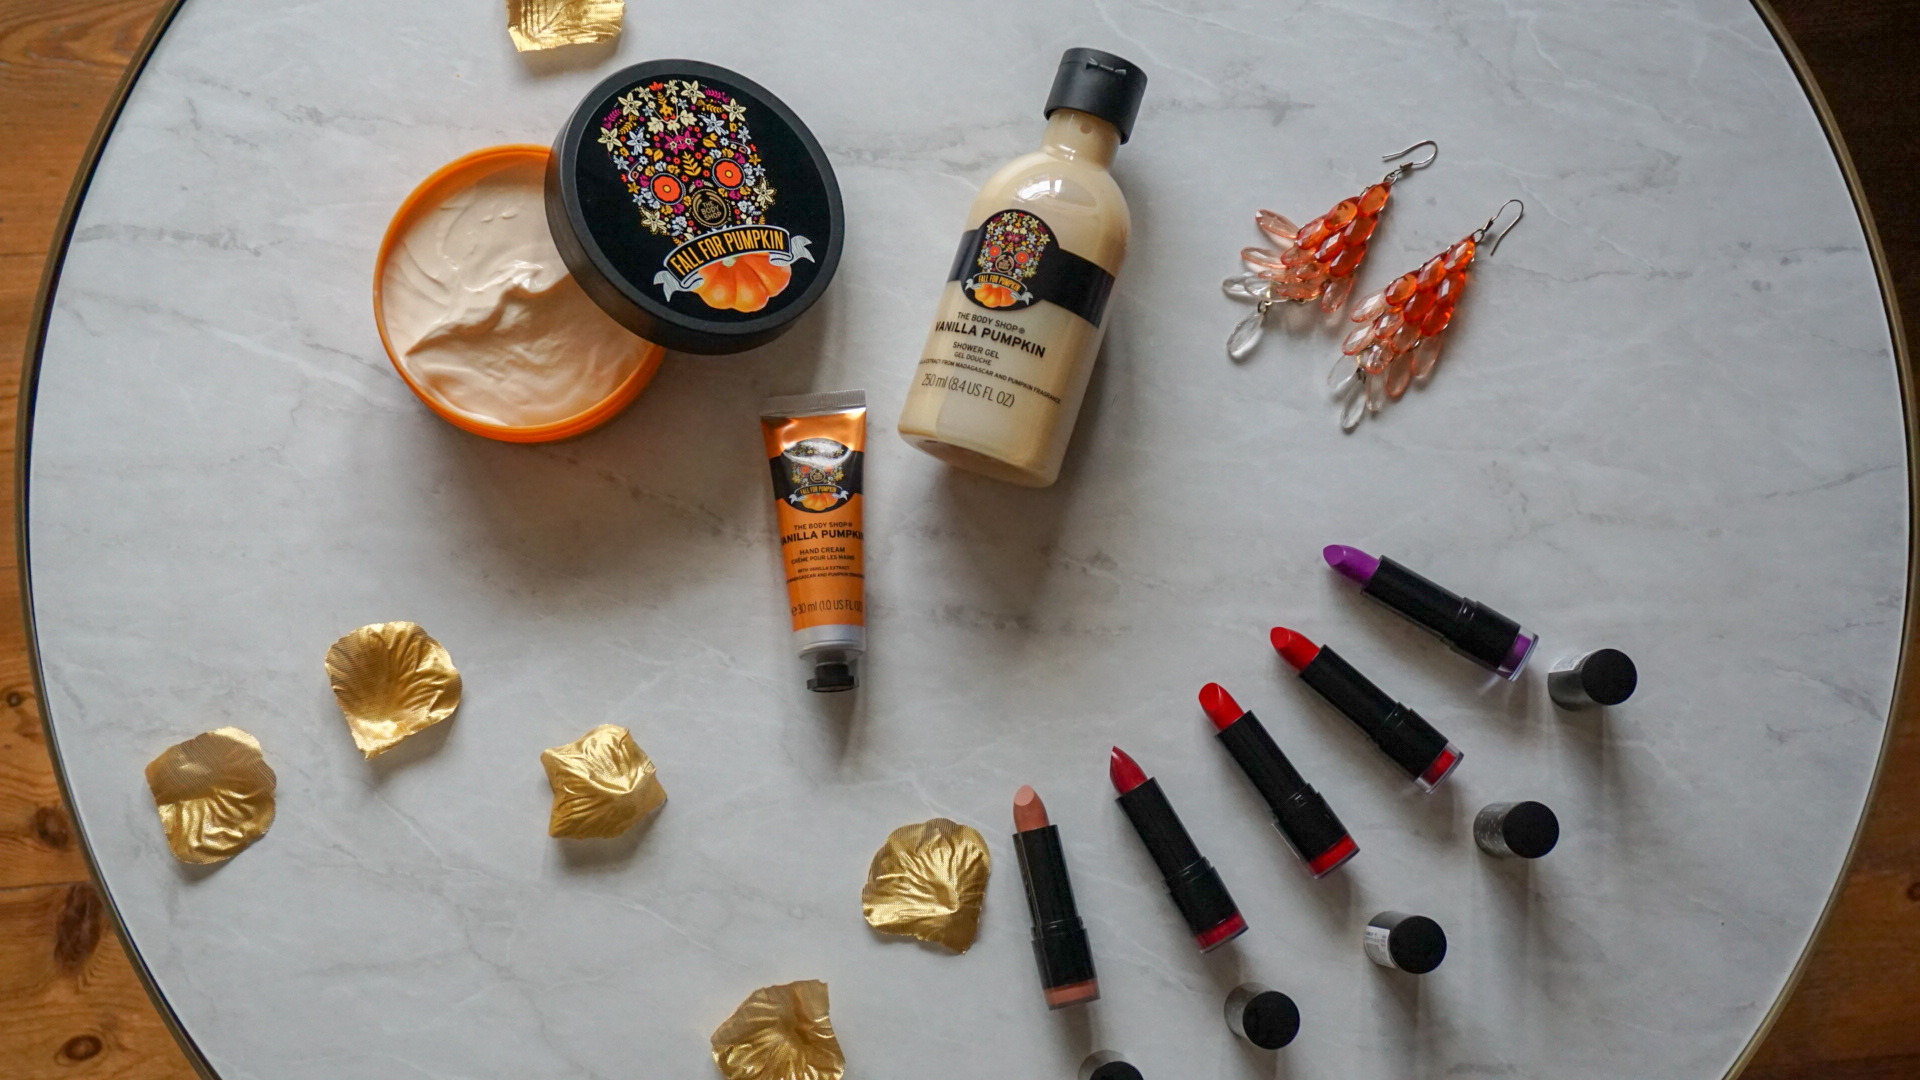 VANILLA PUMPKIN & COLOUR CRUSH FROM THE BODY SHOP